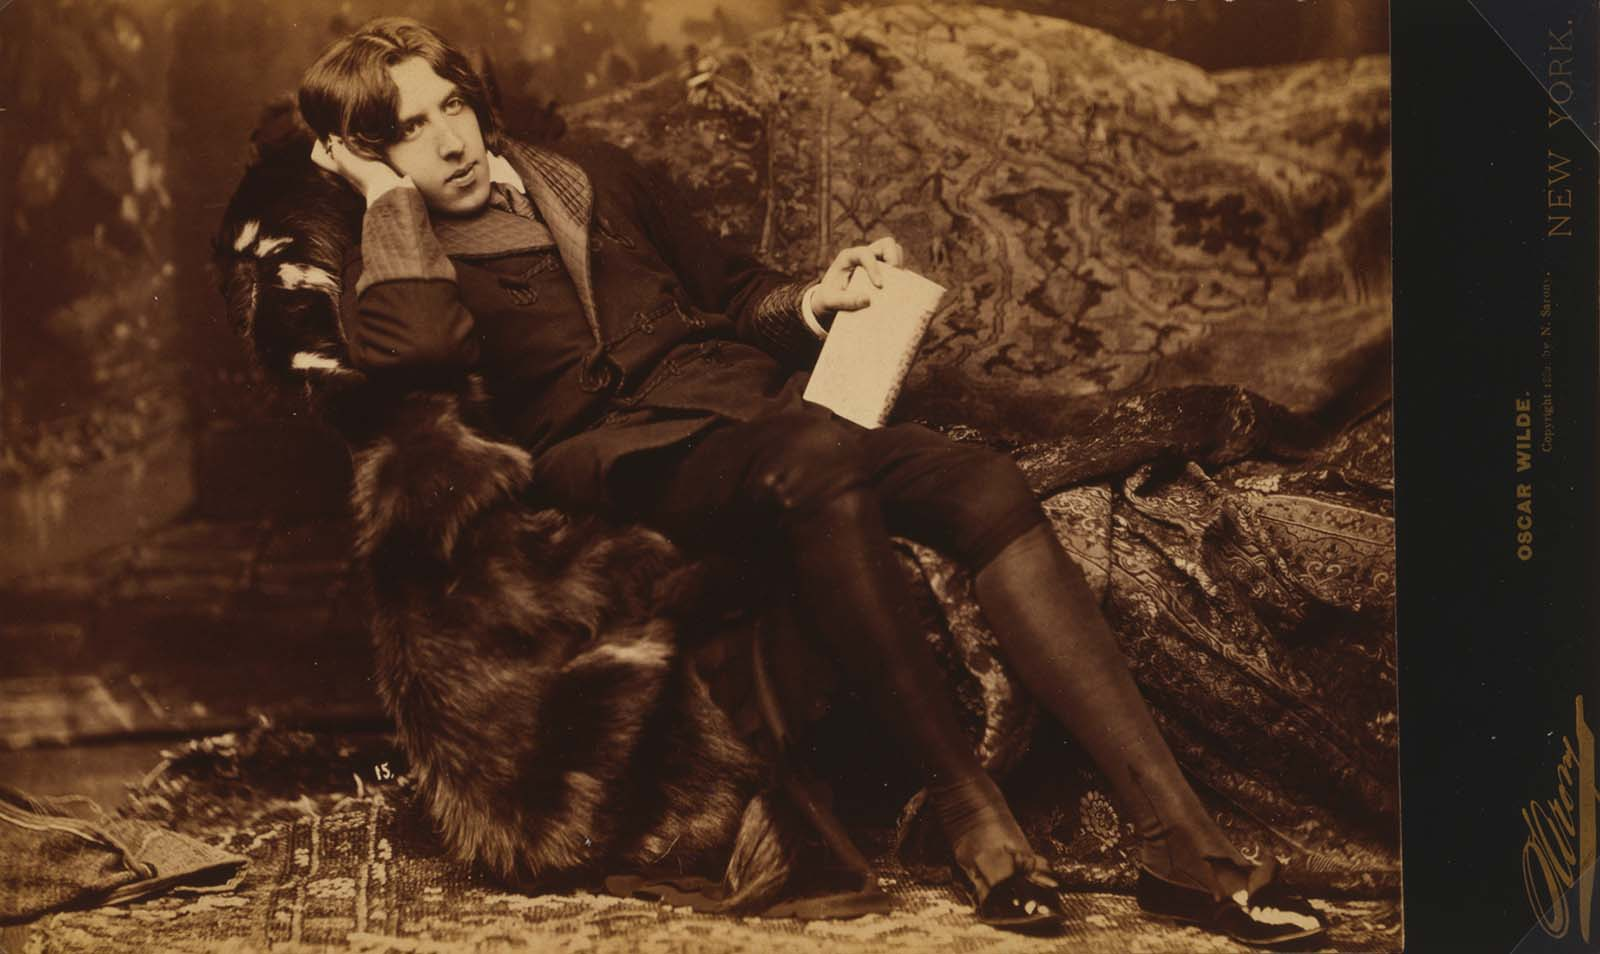 Oscar Wilde (1854-1900). Napoleon Sarony, photographer, ca. 1882. Library of Congress Prints and Photographs Division Washington, D.C. 20540 USA. LC-DIG-ppmsca-07756